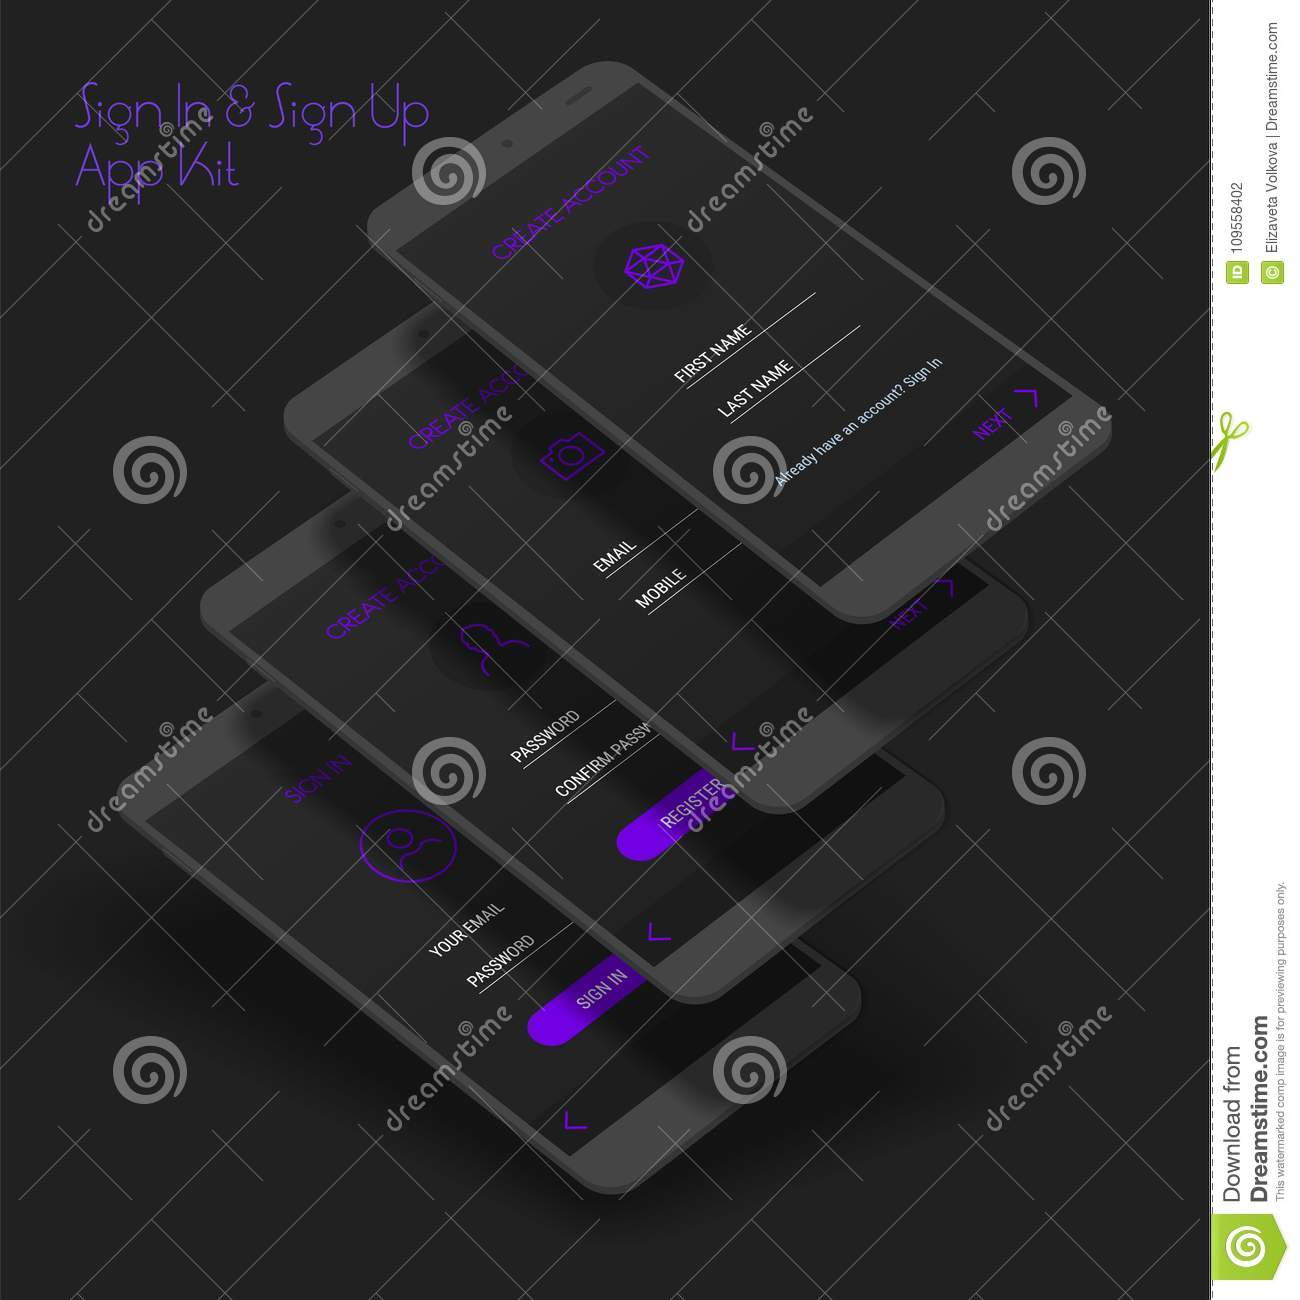 Mobile App UI Sign In And Sign Up Screens 3d Mockup Kit Stock Vector ...